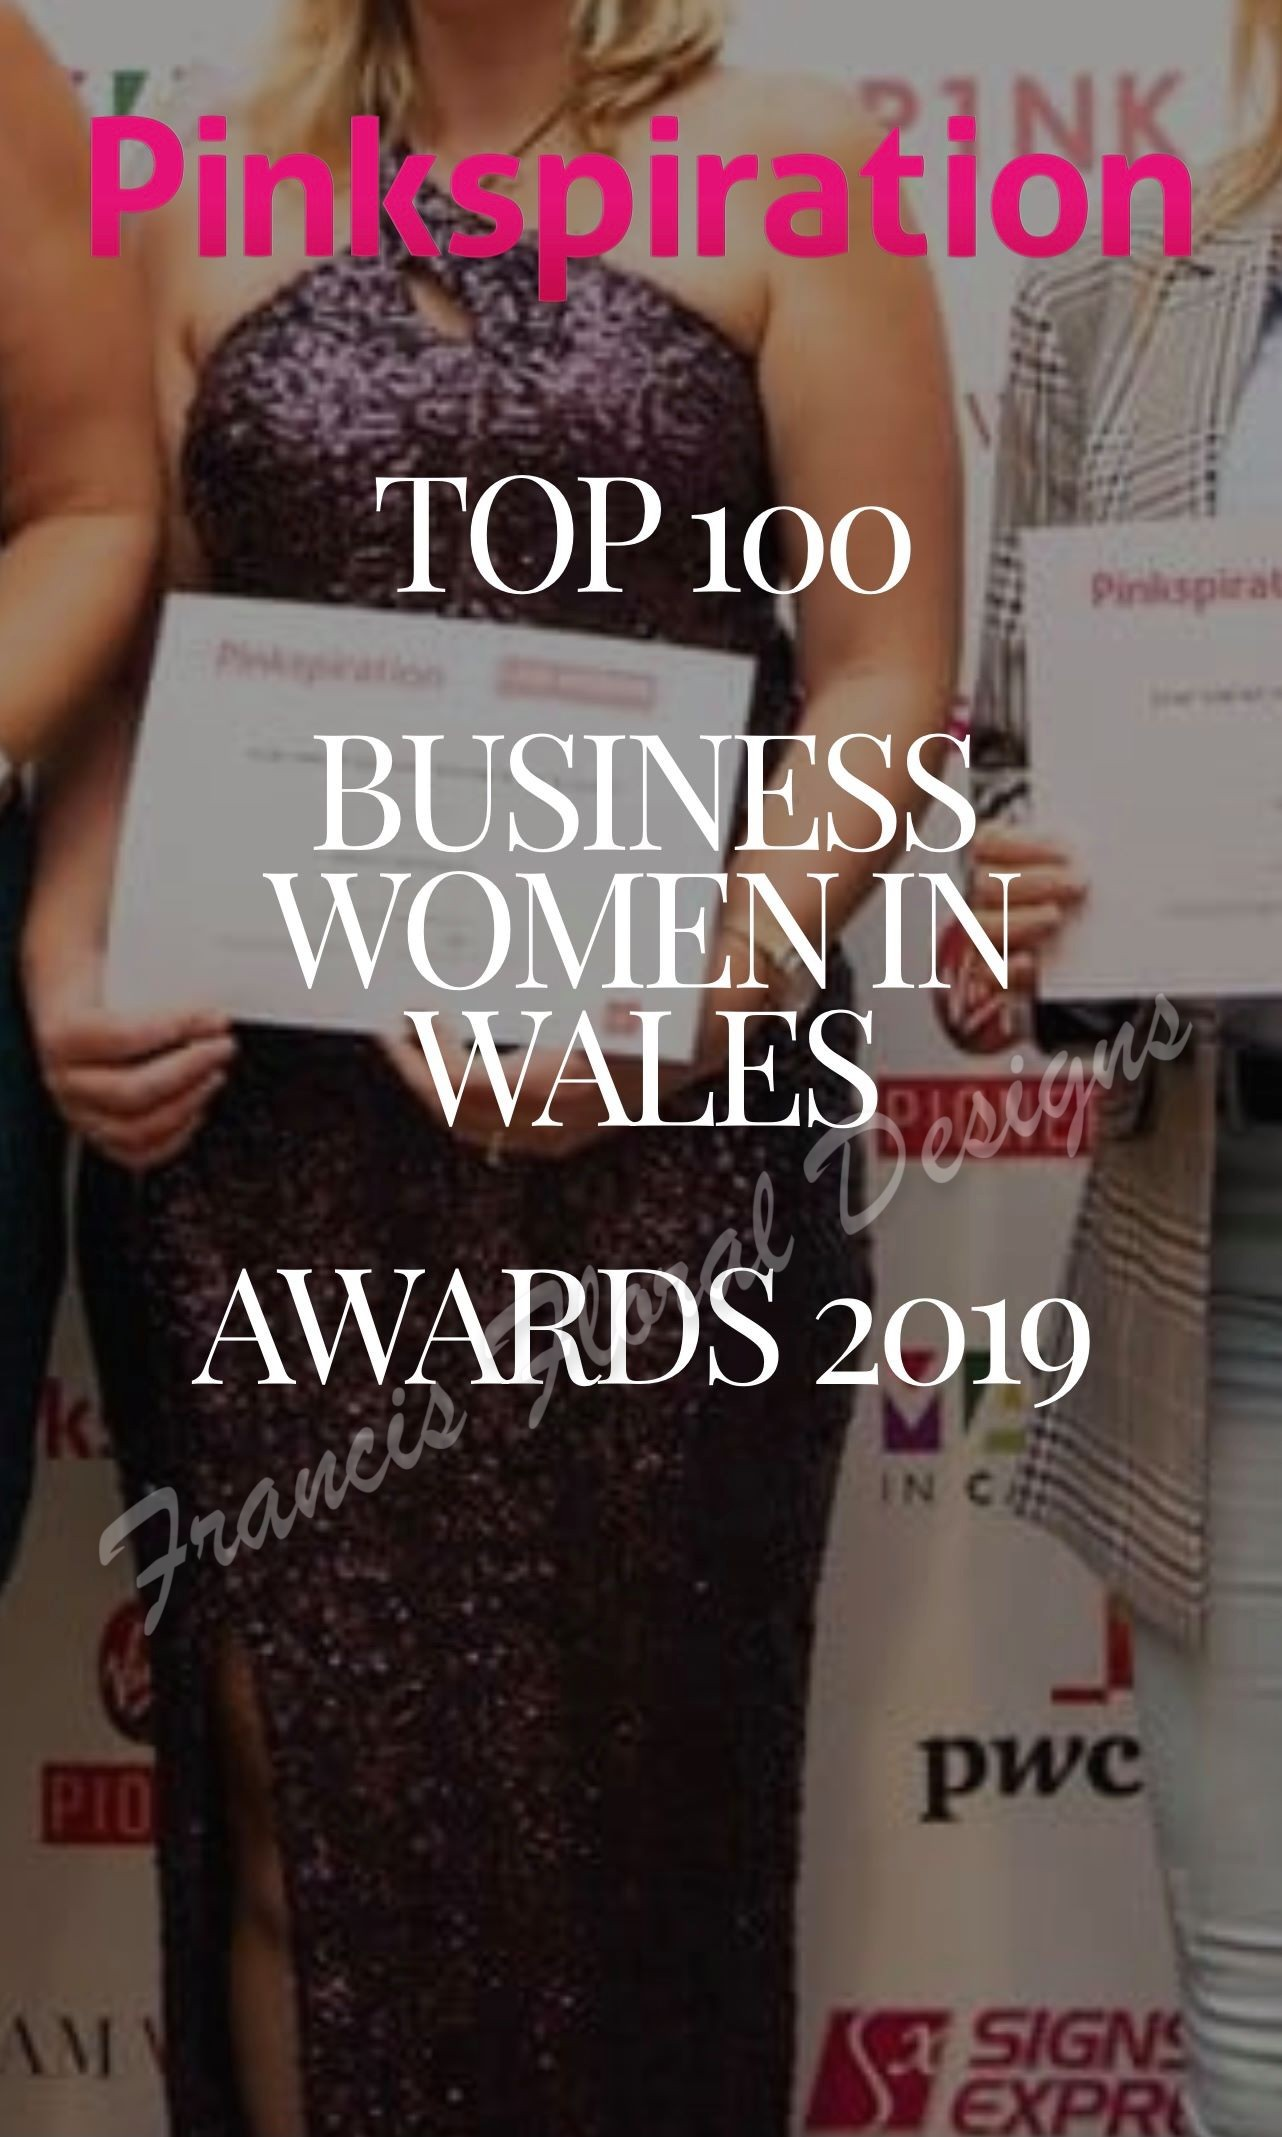 Top 100 business women award